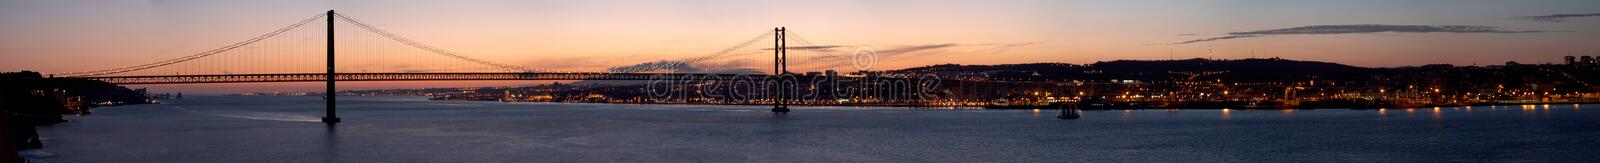 Panorama of bridge 25 de Abril Lisbon, Portugal royalty free stock image